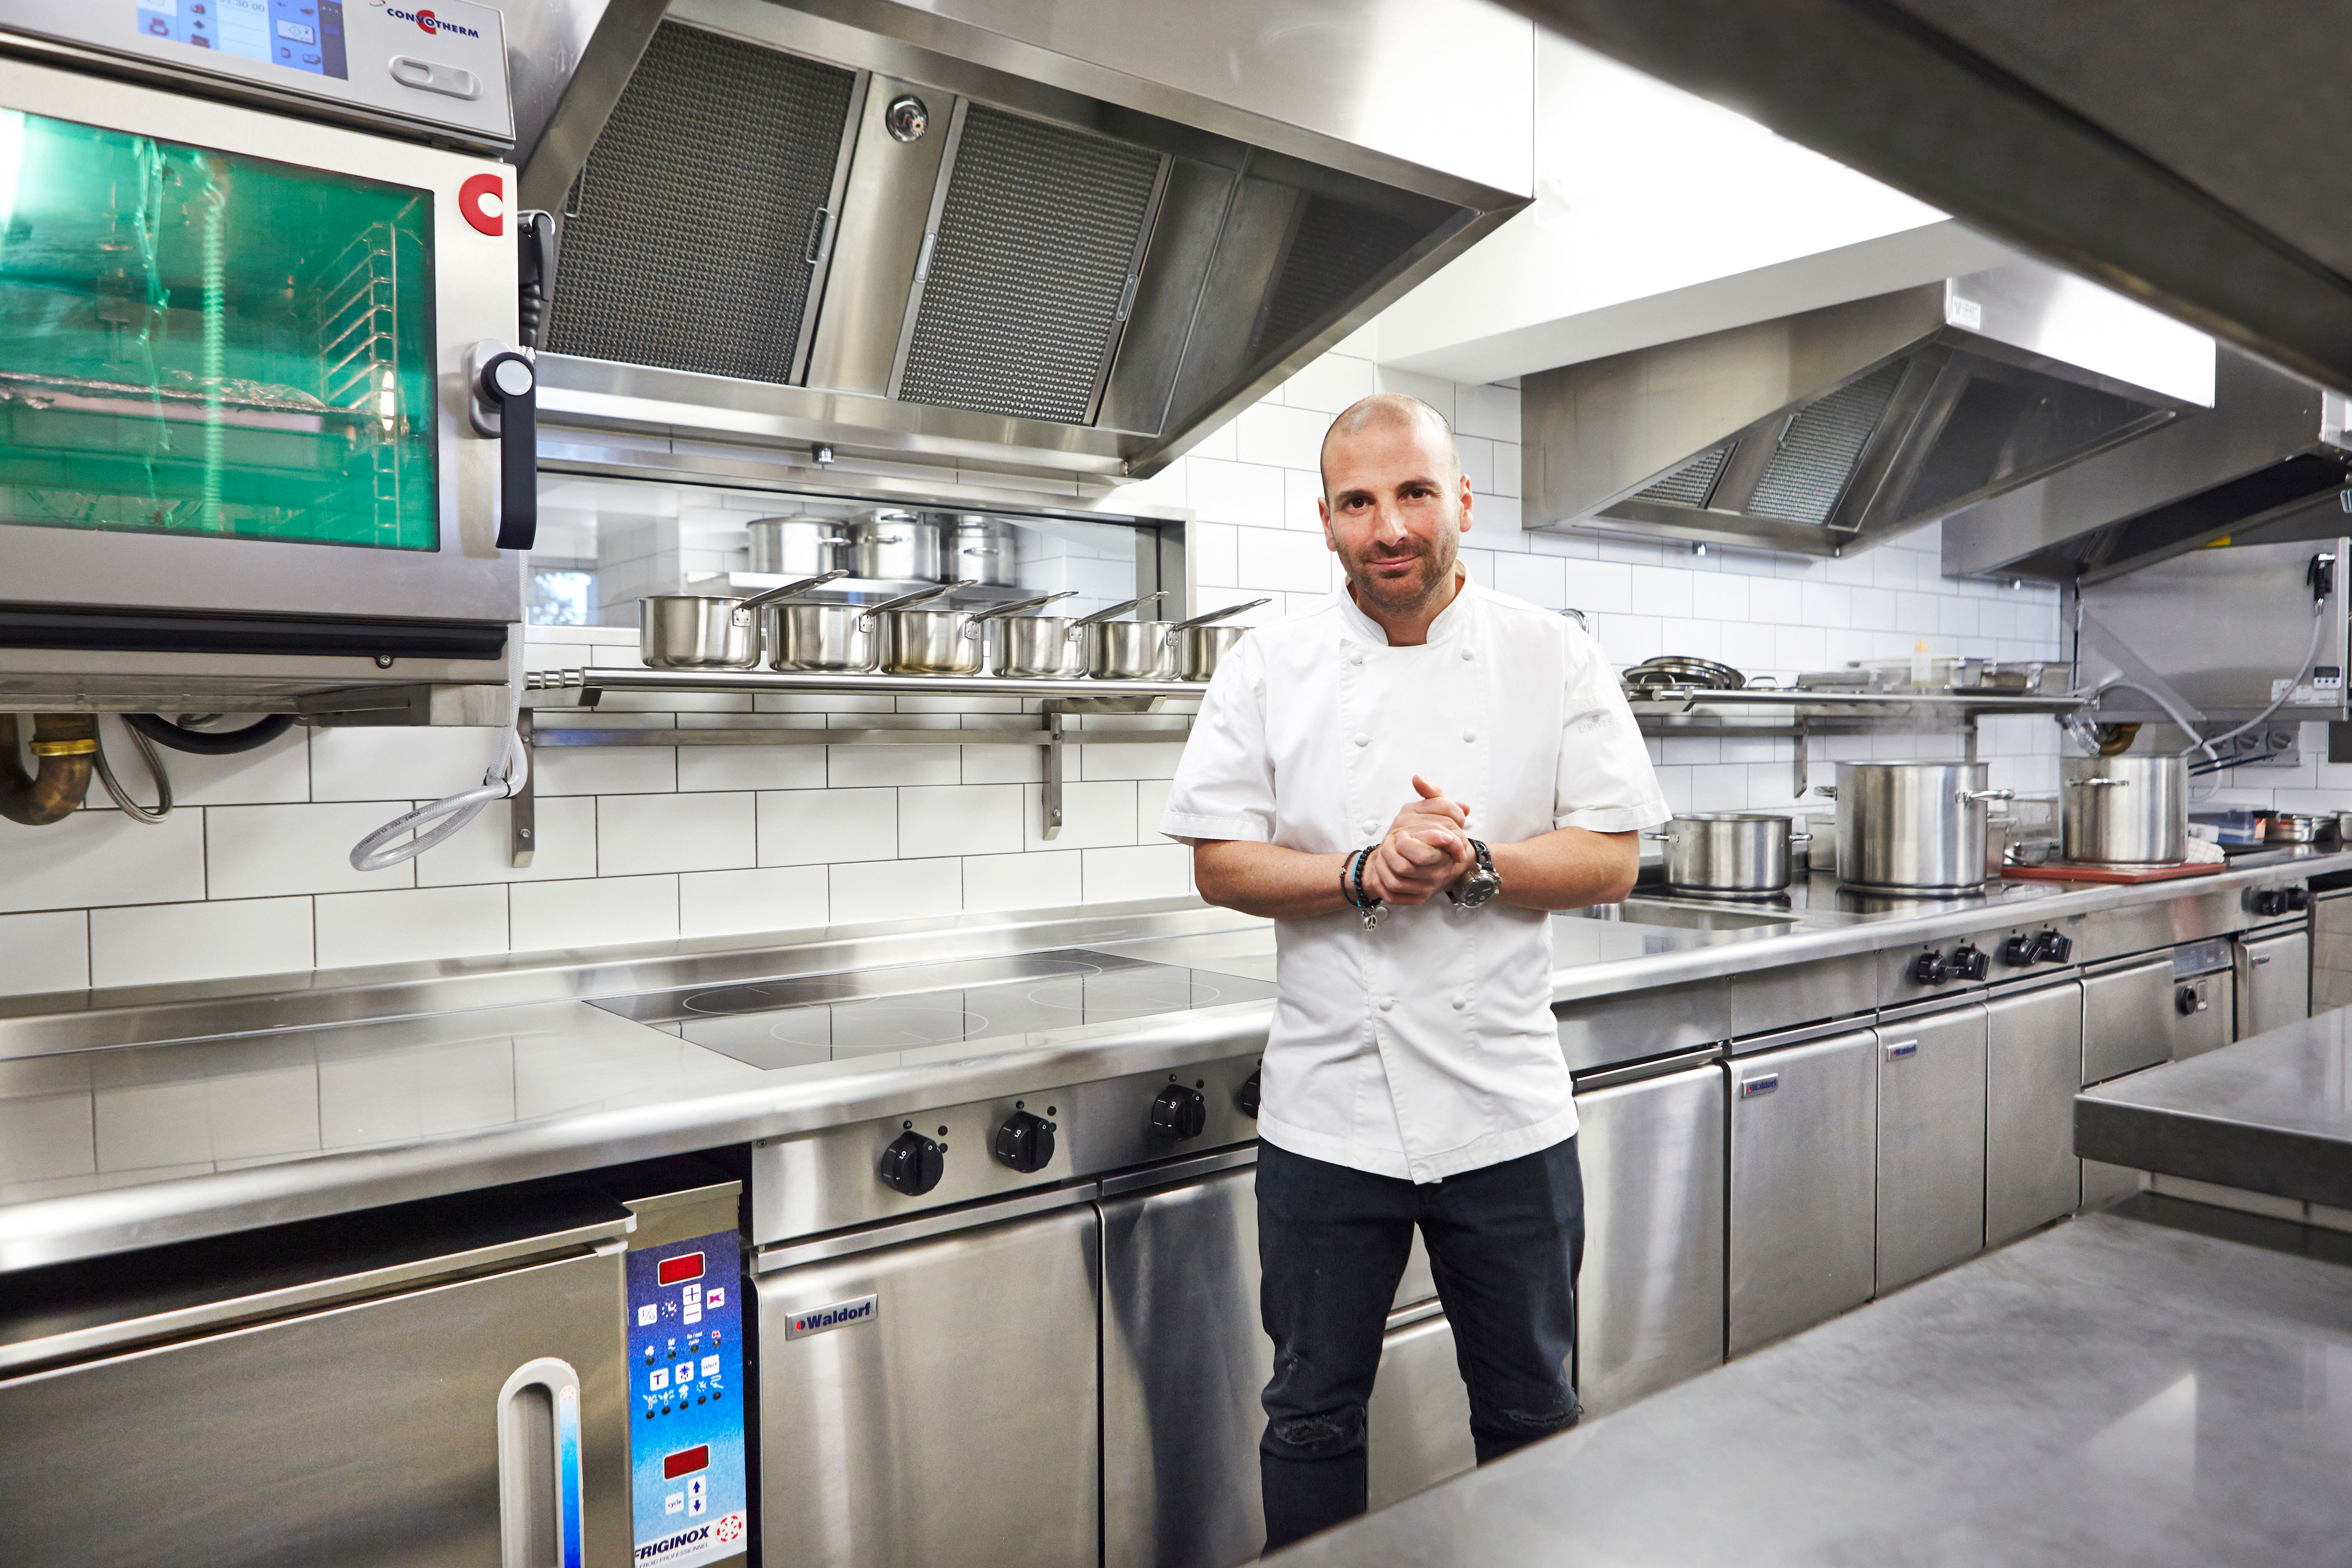 The equipment range includes two Waldorf Bold 4-zone induction cooktops and a Waldorf twin pan commercial deep fryer.